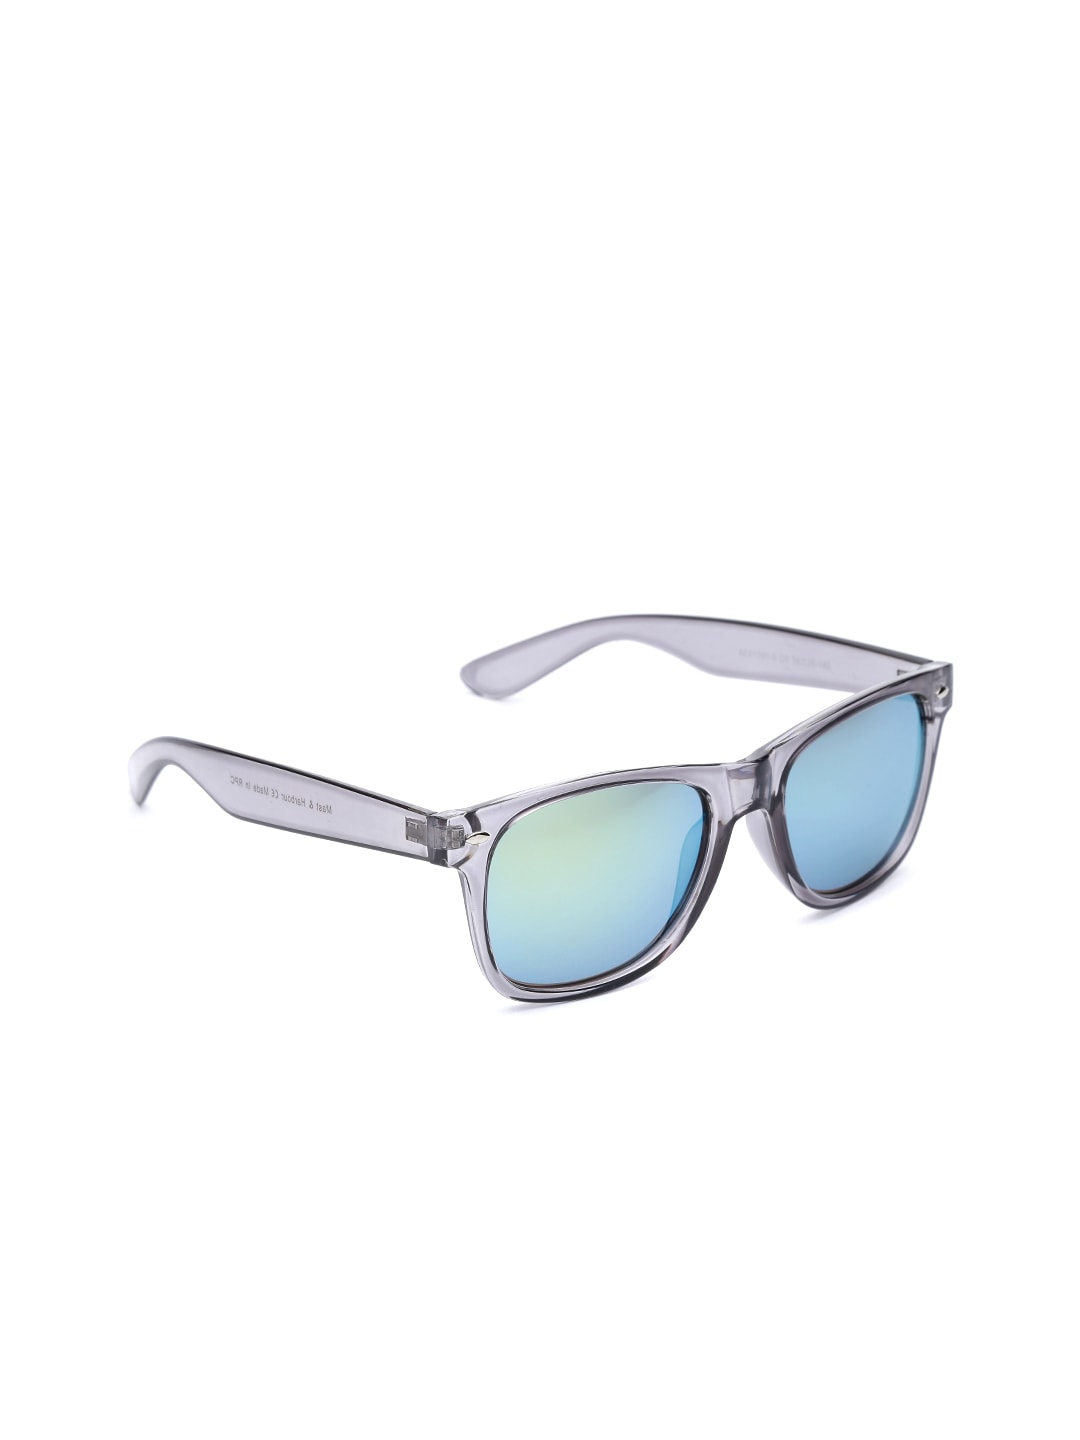 a717b8eca869 Sunglasses - Buy Shades for Men and Women Online in India